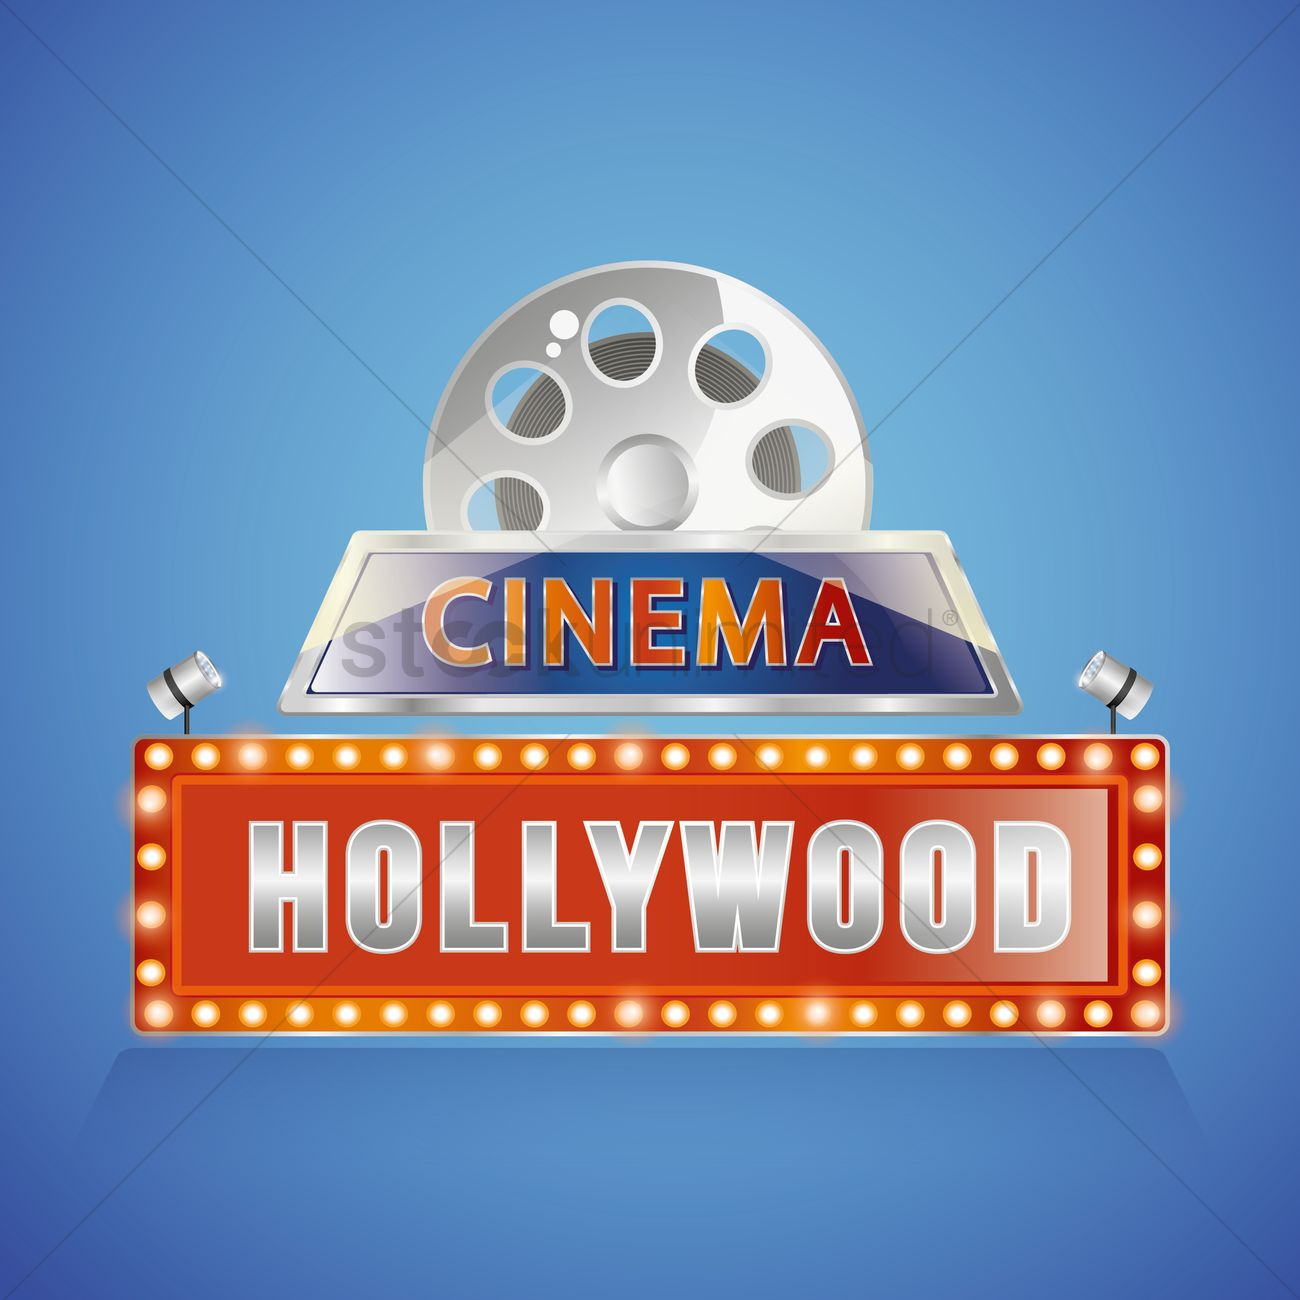 Hollywood Cinema Sign Vector Graphic